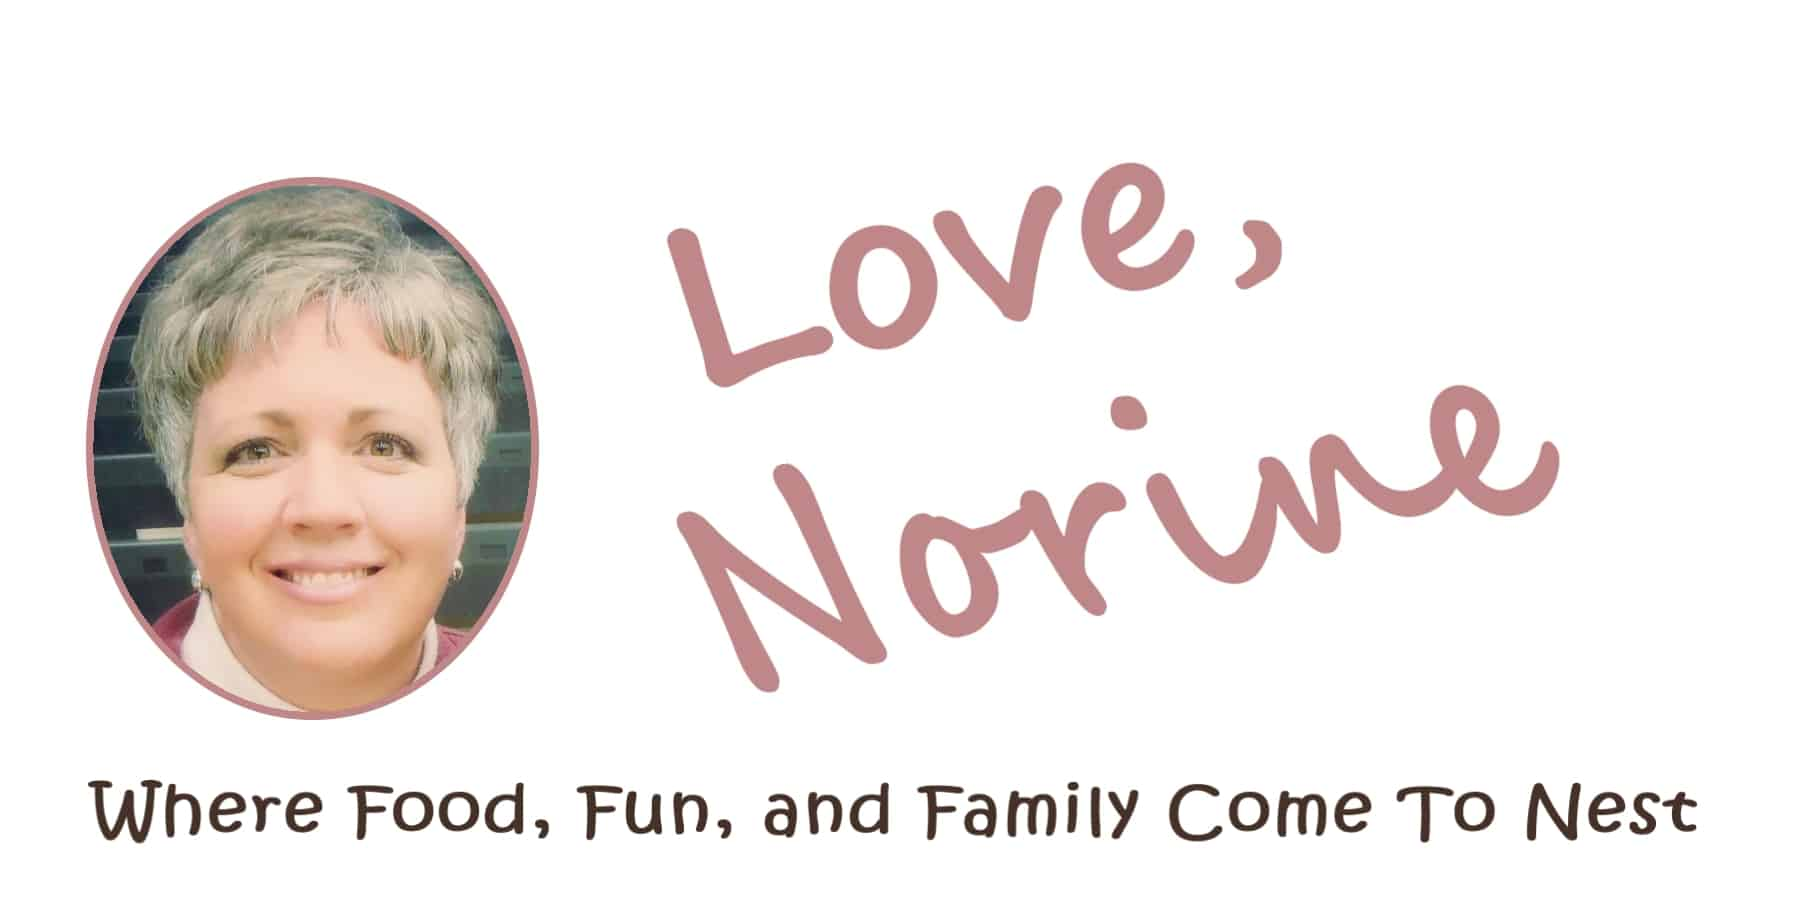 Photo of Norine with her Signature and Tag Line